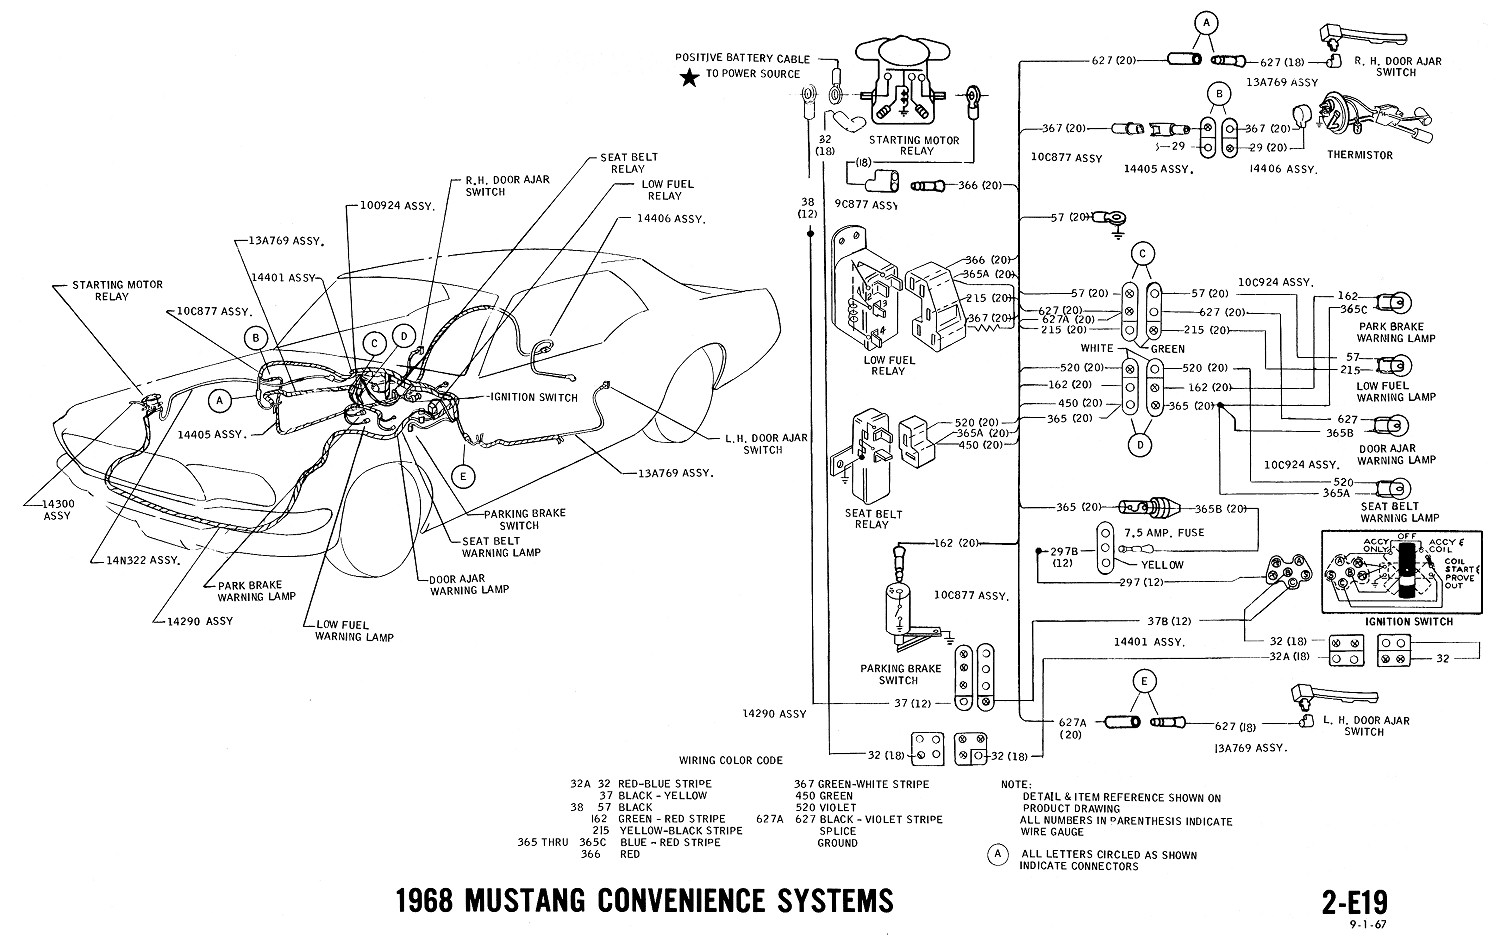 1968 mustang wiring diagrams evolving software rh peterfranza com 1970 Firebird Wiring Diagram 1967 VW Wiring Diagram